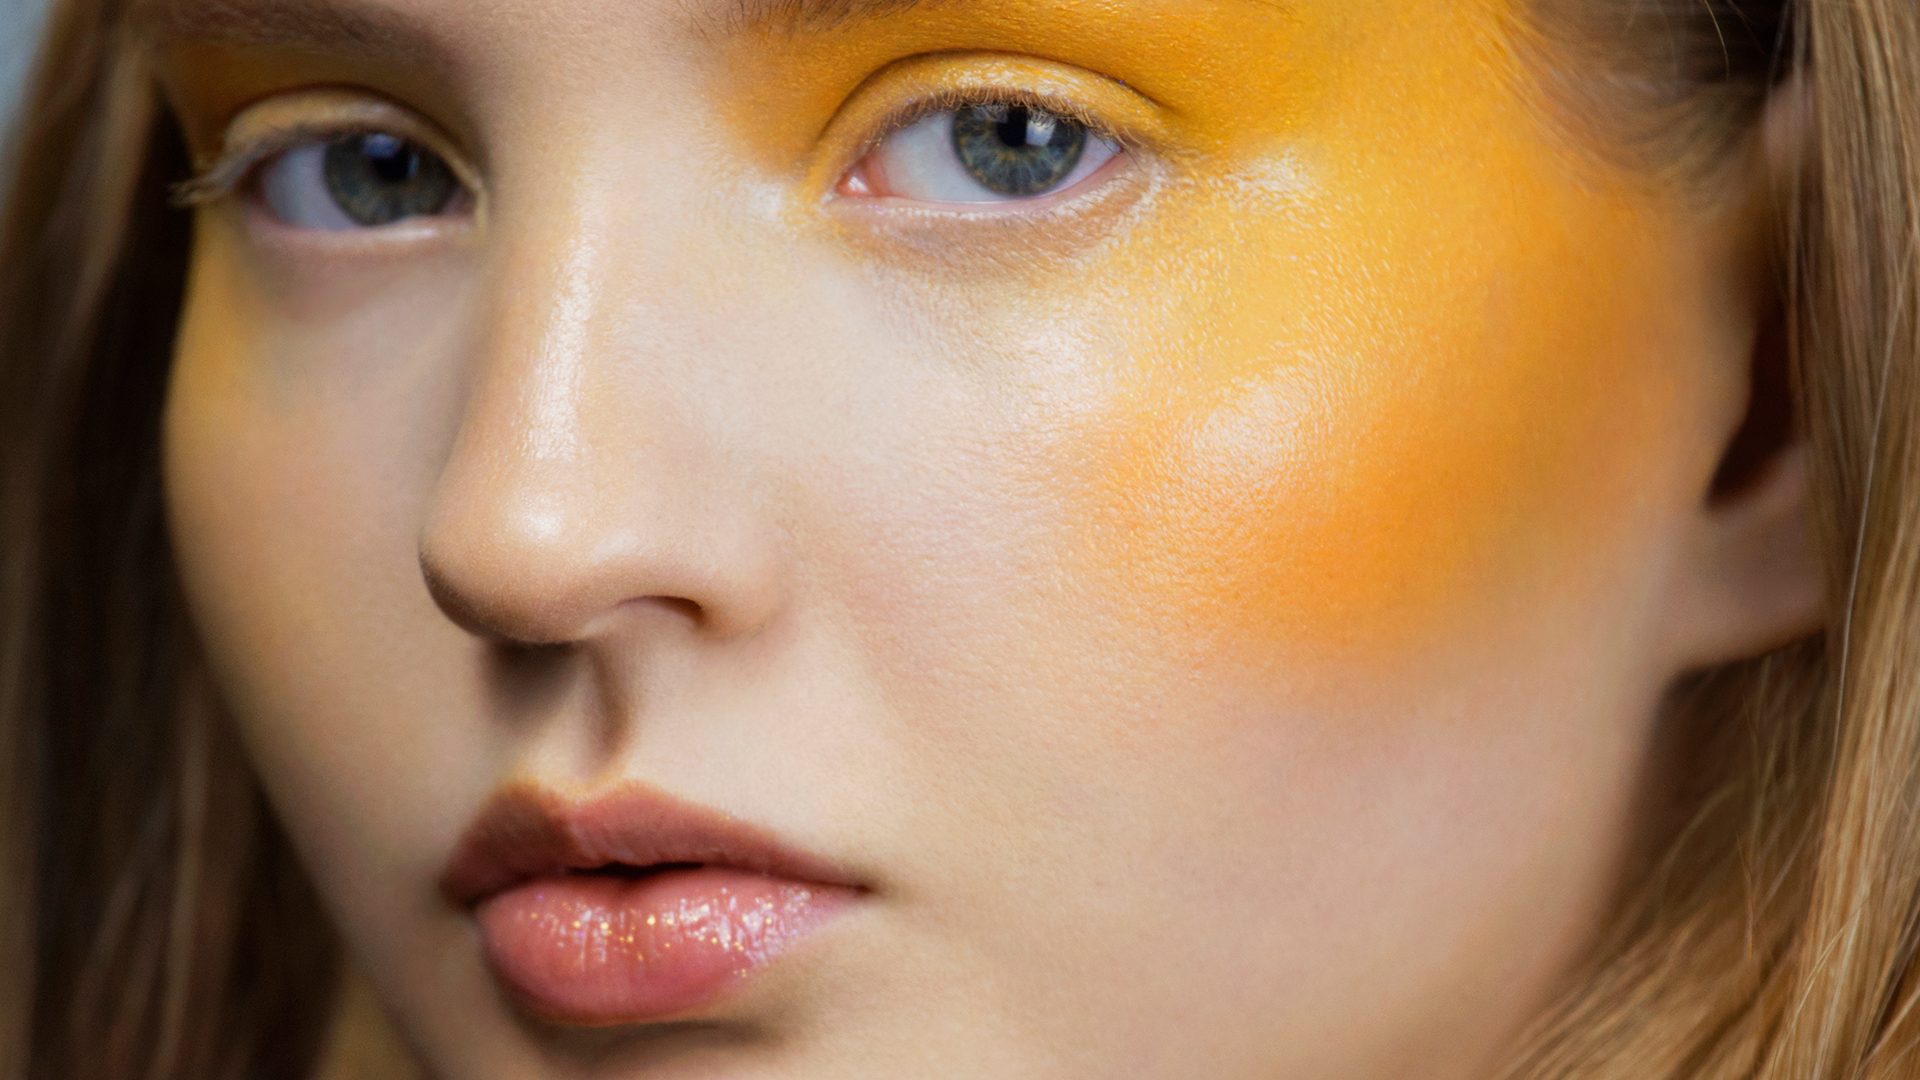 Close-up of woman with yellow face paint.